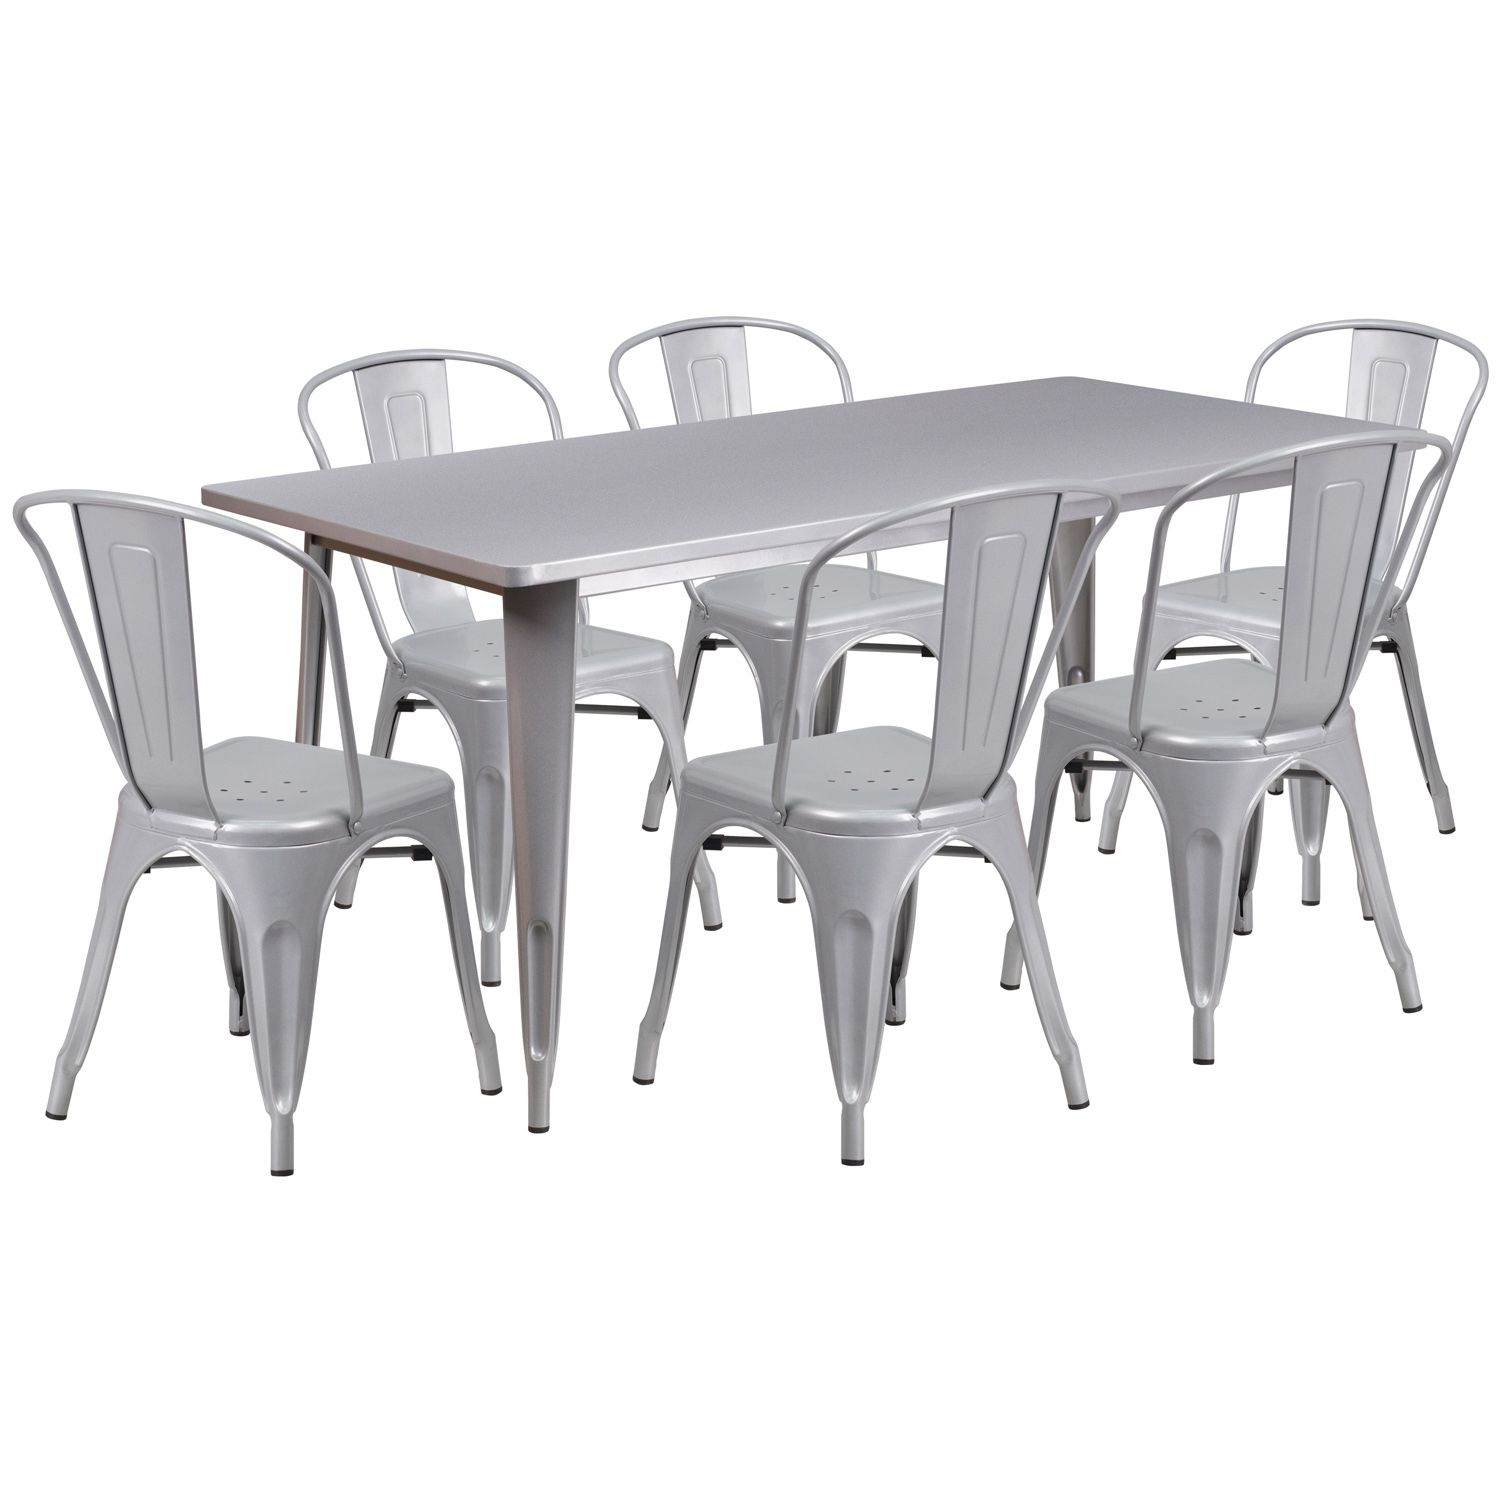 "32"" x 63"" Rectangular Metal Dining Table Set - Four Chairs"